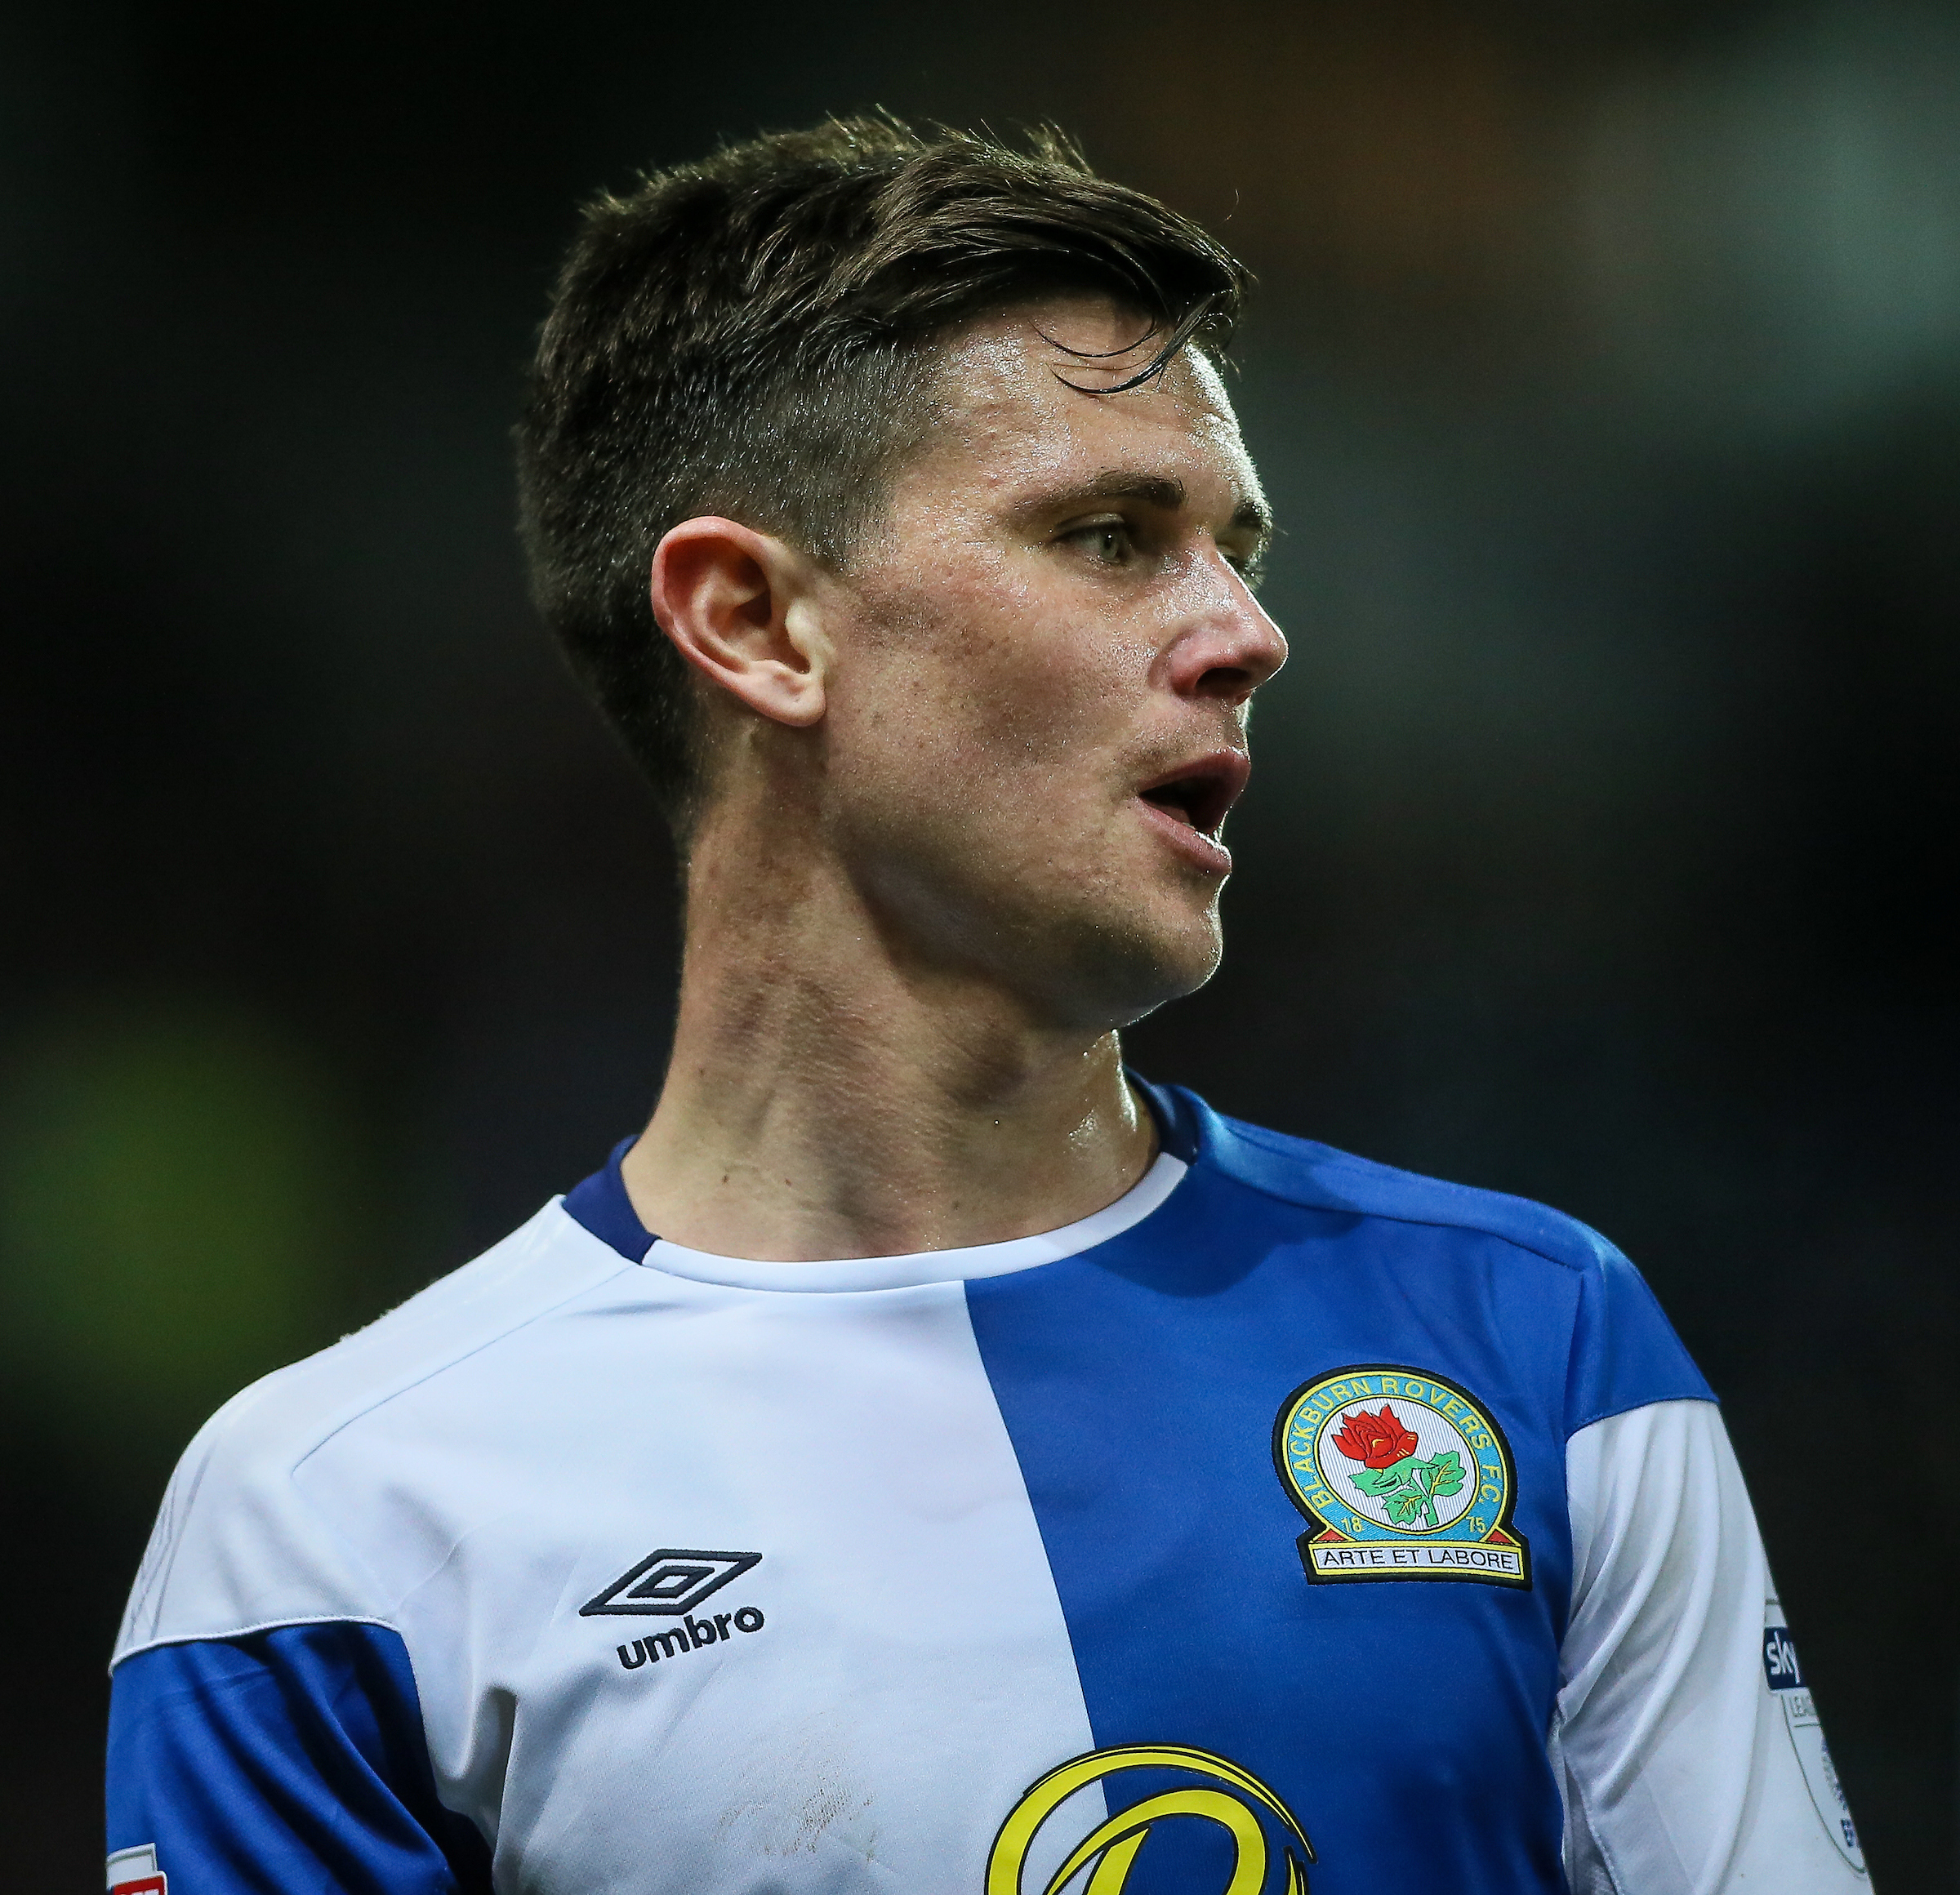 Leeds United loanee Marcus Antonsson made his first appearance of the calendar year in Rovers' win over Bury